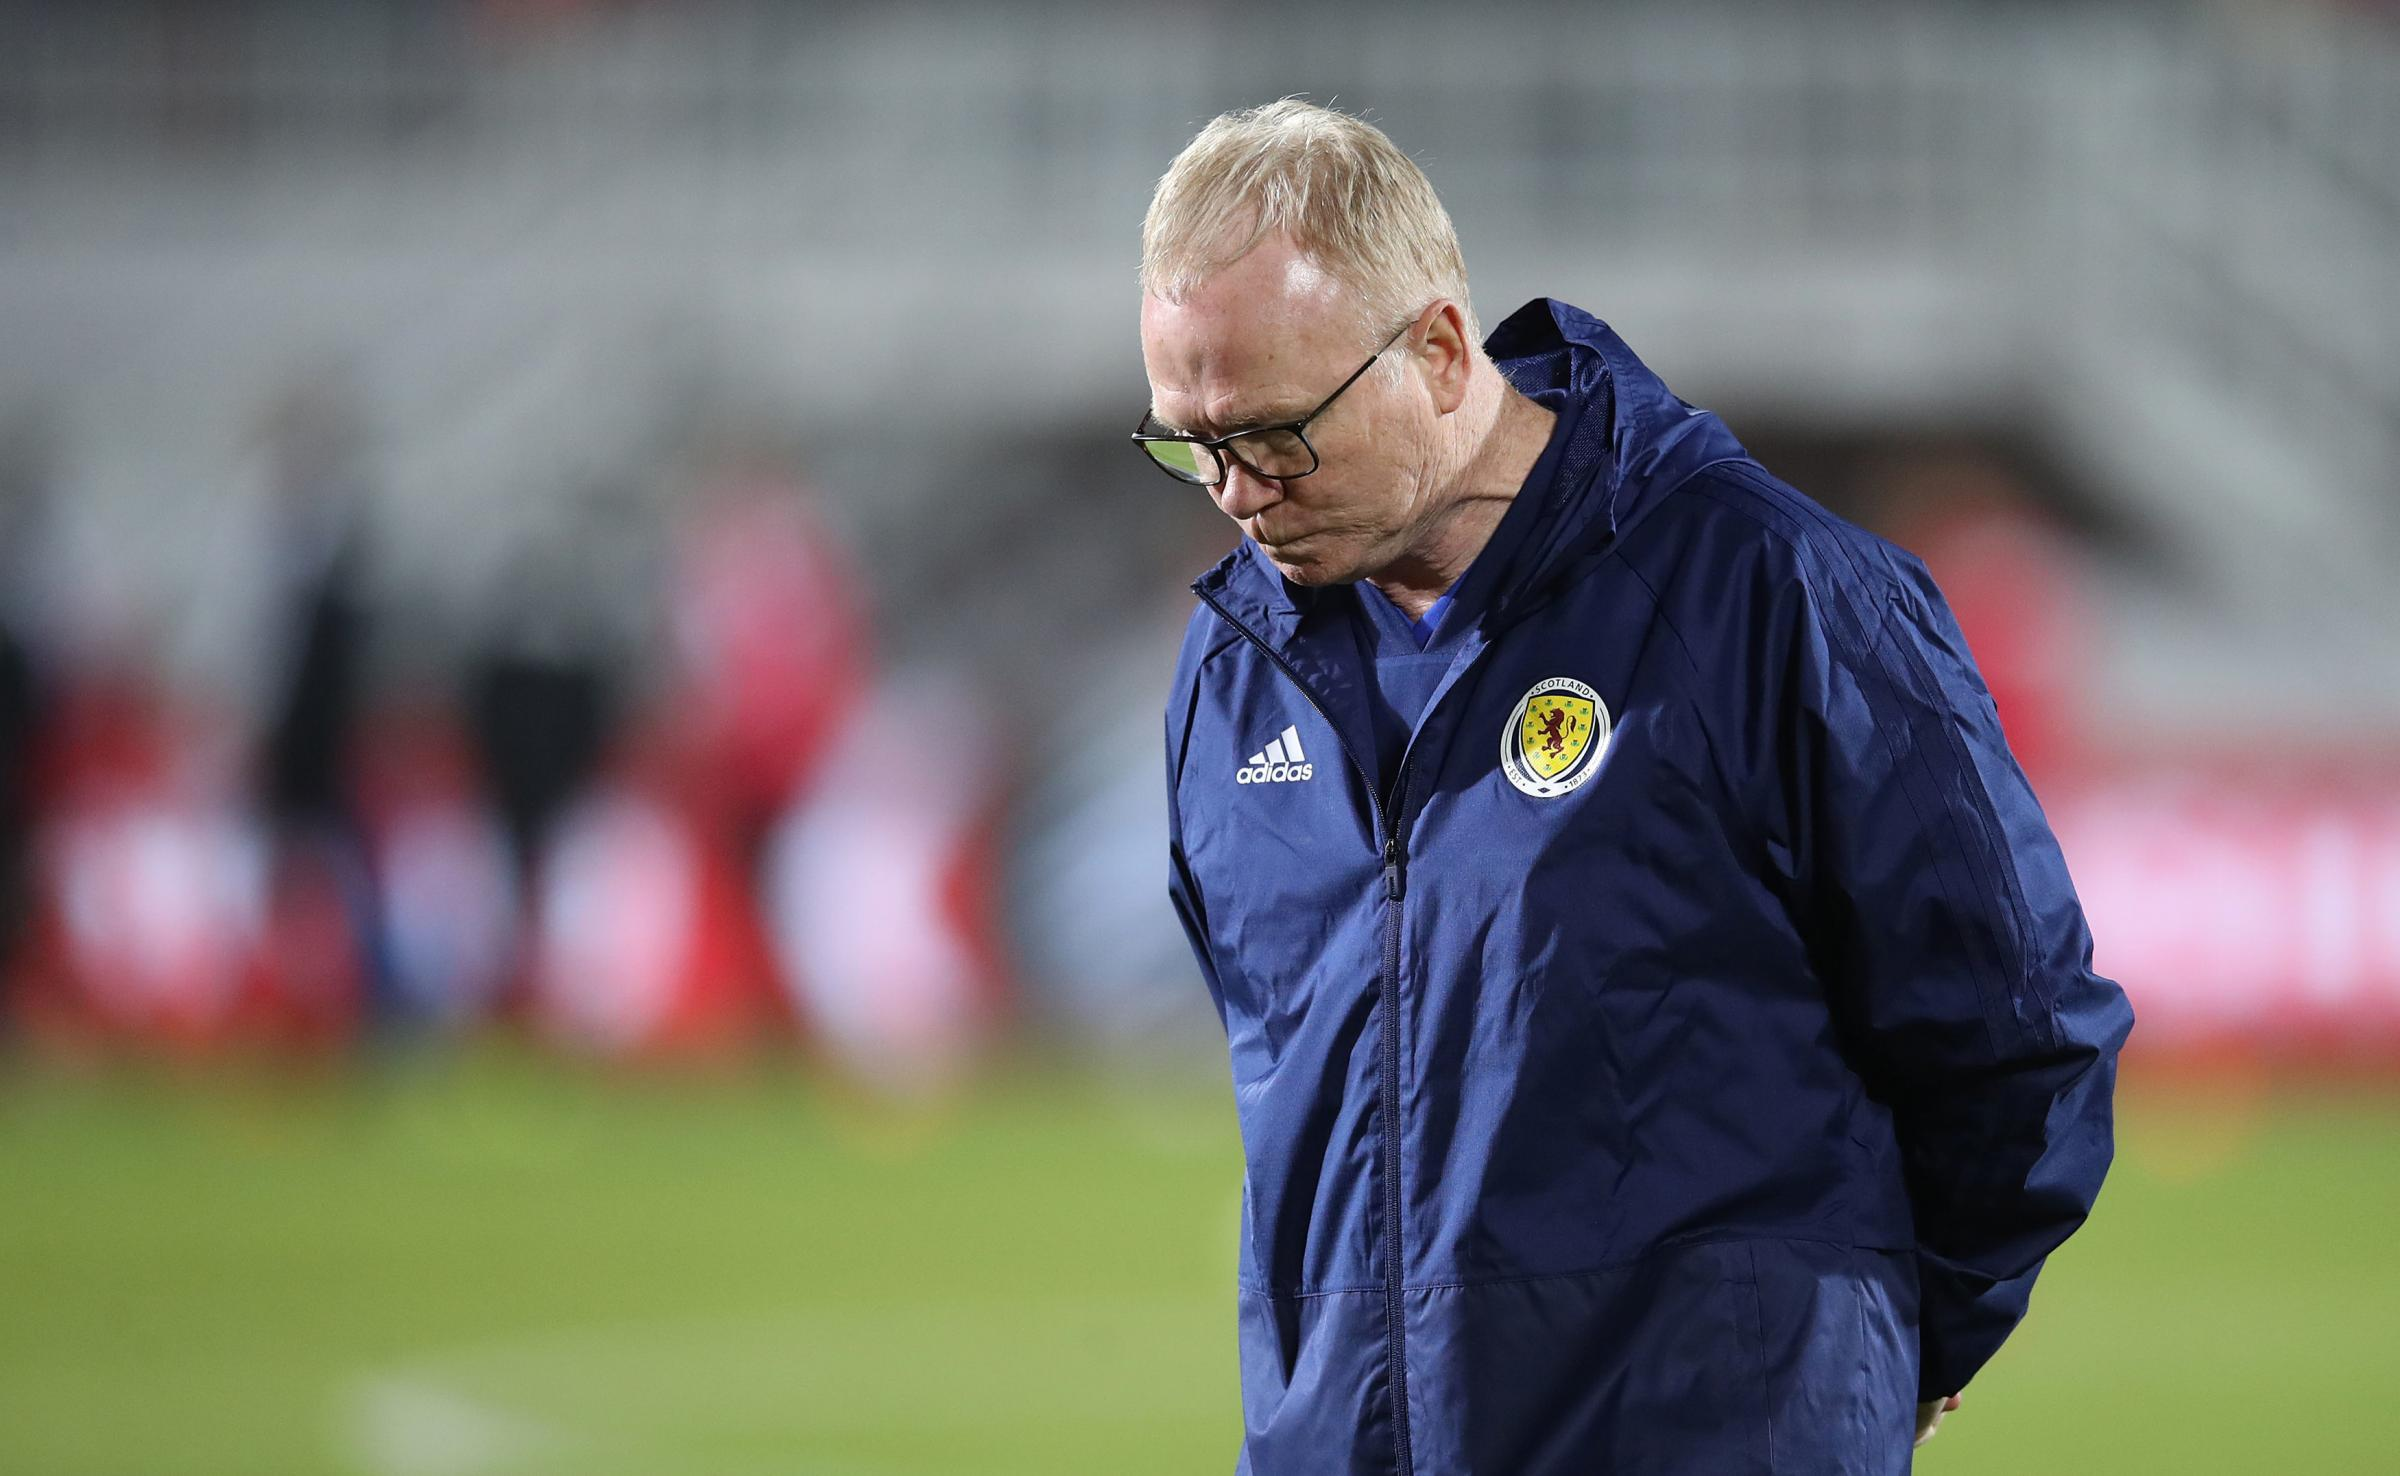 Scotland manager Alex McLeish will learn his fate today after a SFA meeting